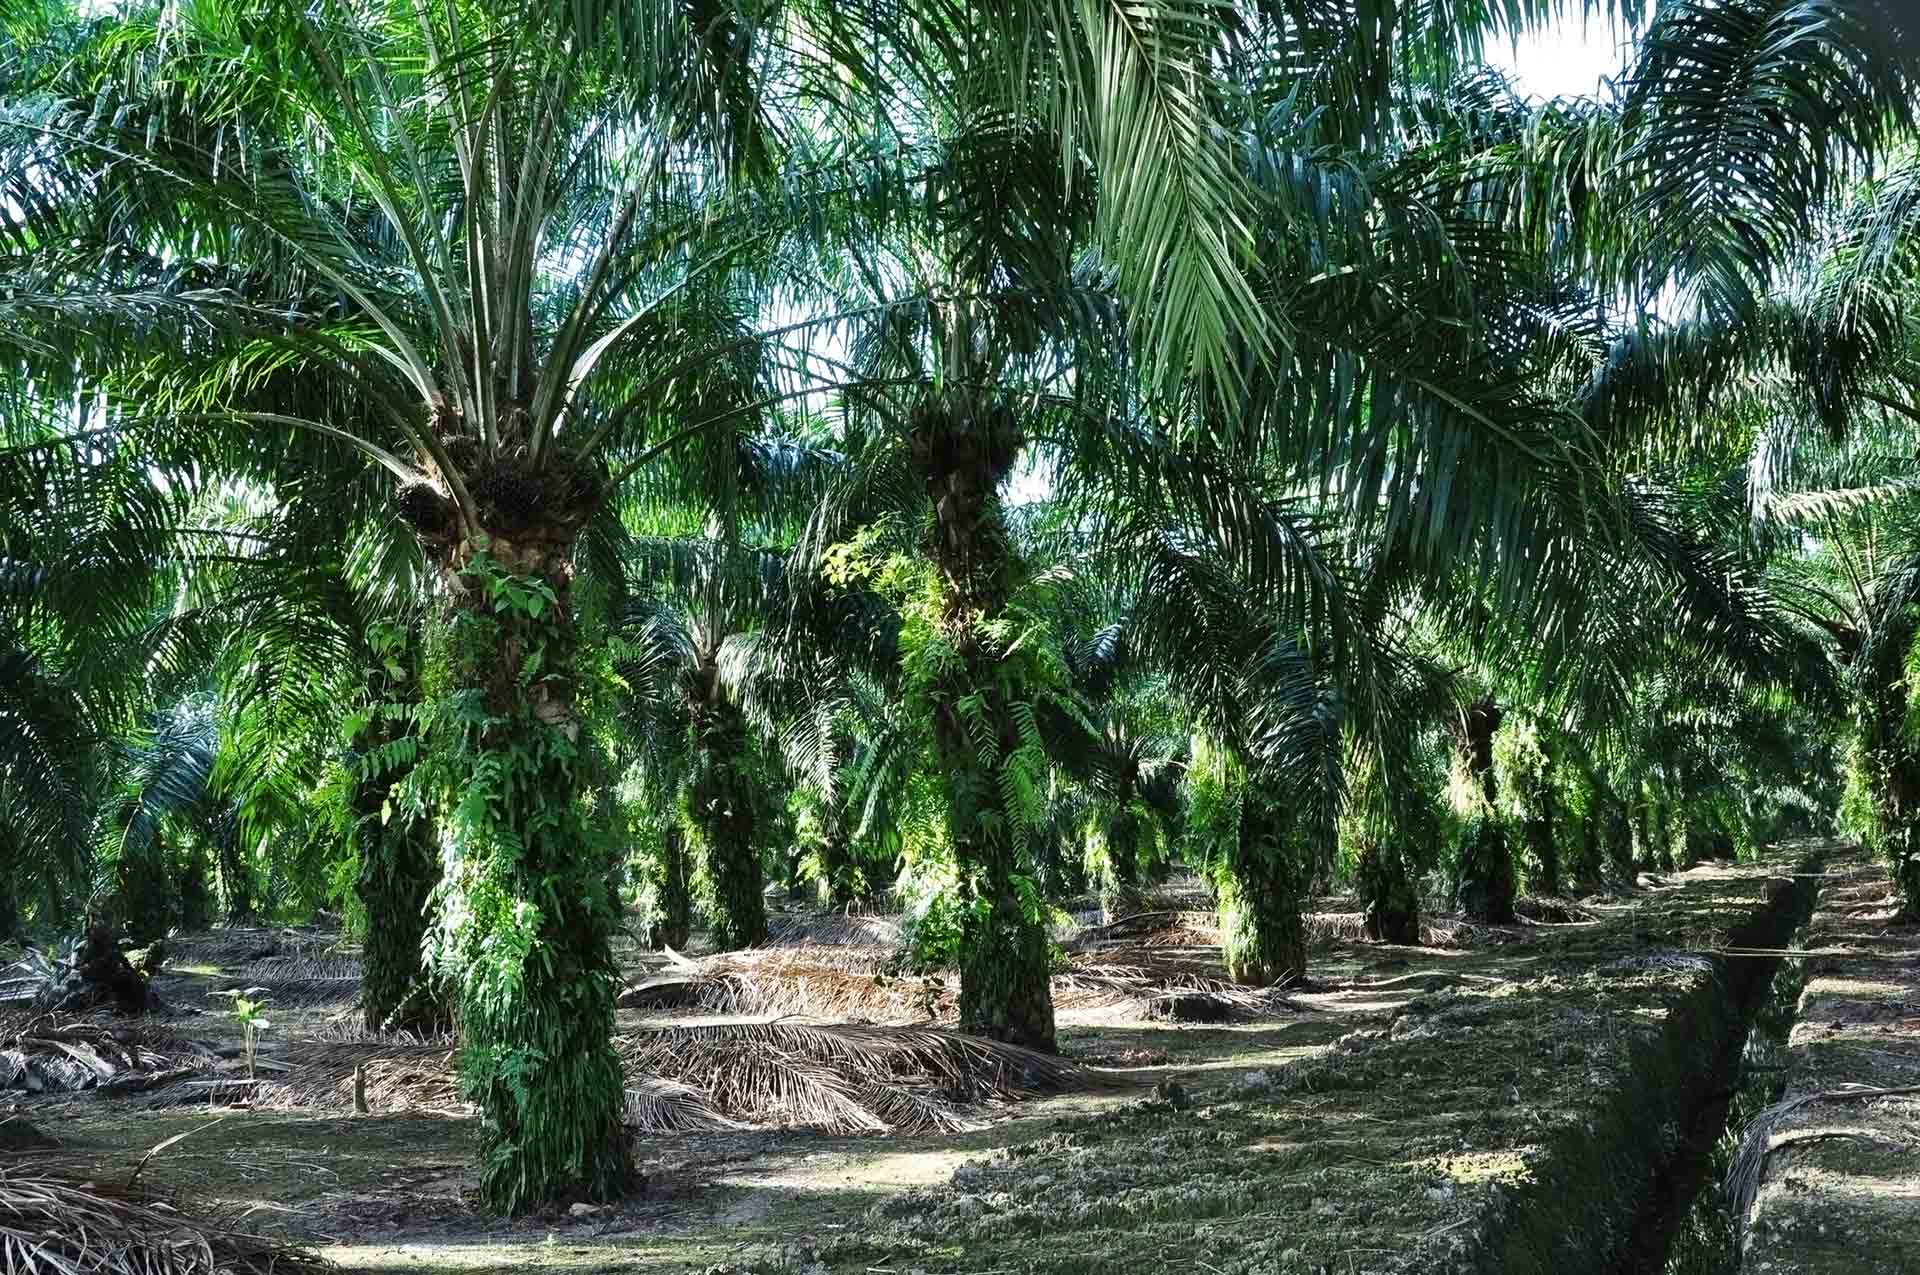 A grove of oil palm trees.